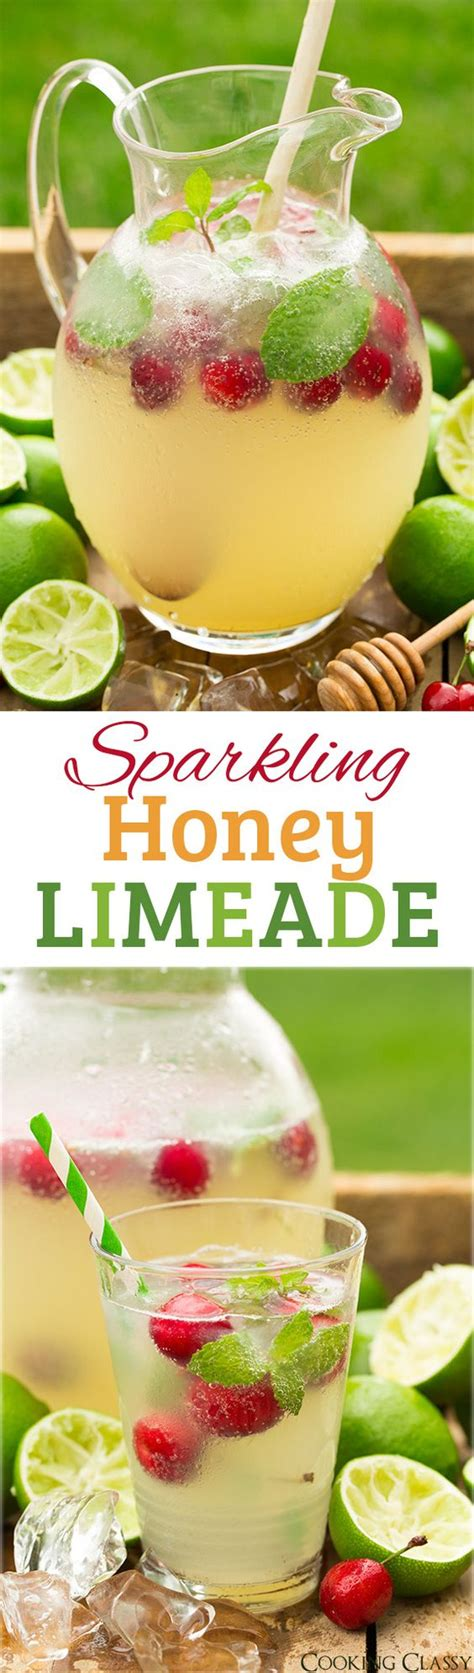 sparkling celebration punch recipe non alcoholic the best easy non alcoholic drinks recipes creative mocktails and family friendly